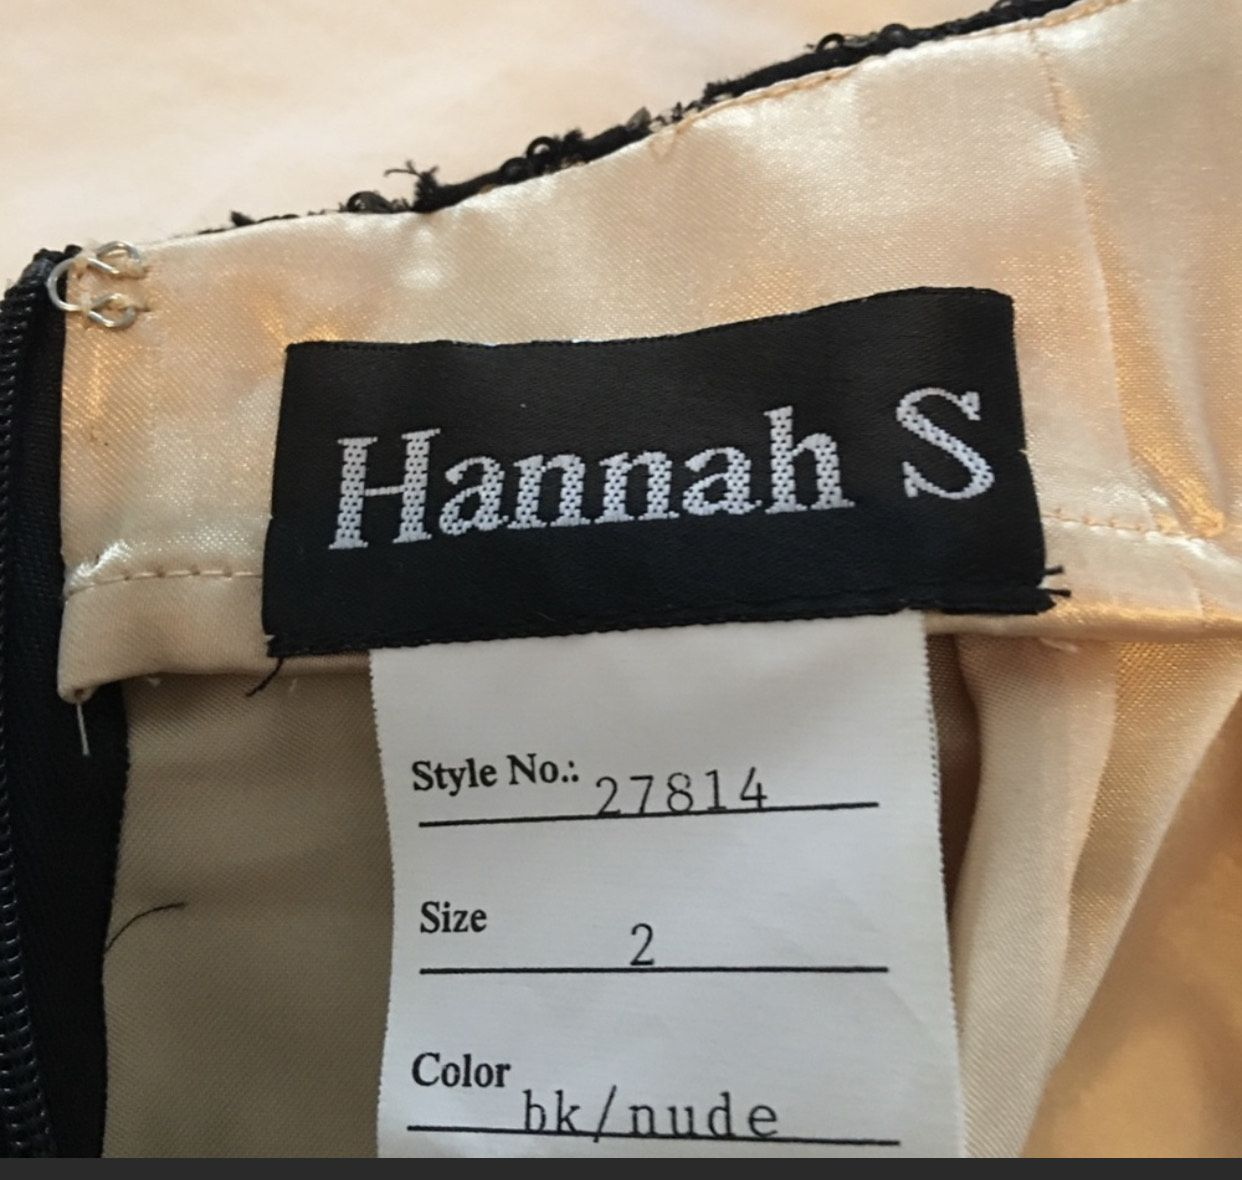 Hanna Black Size 2 Sorority Formal Lace Cocktail Dress on Queenly